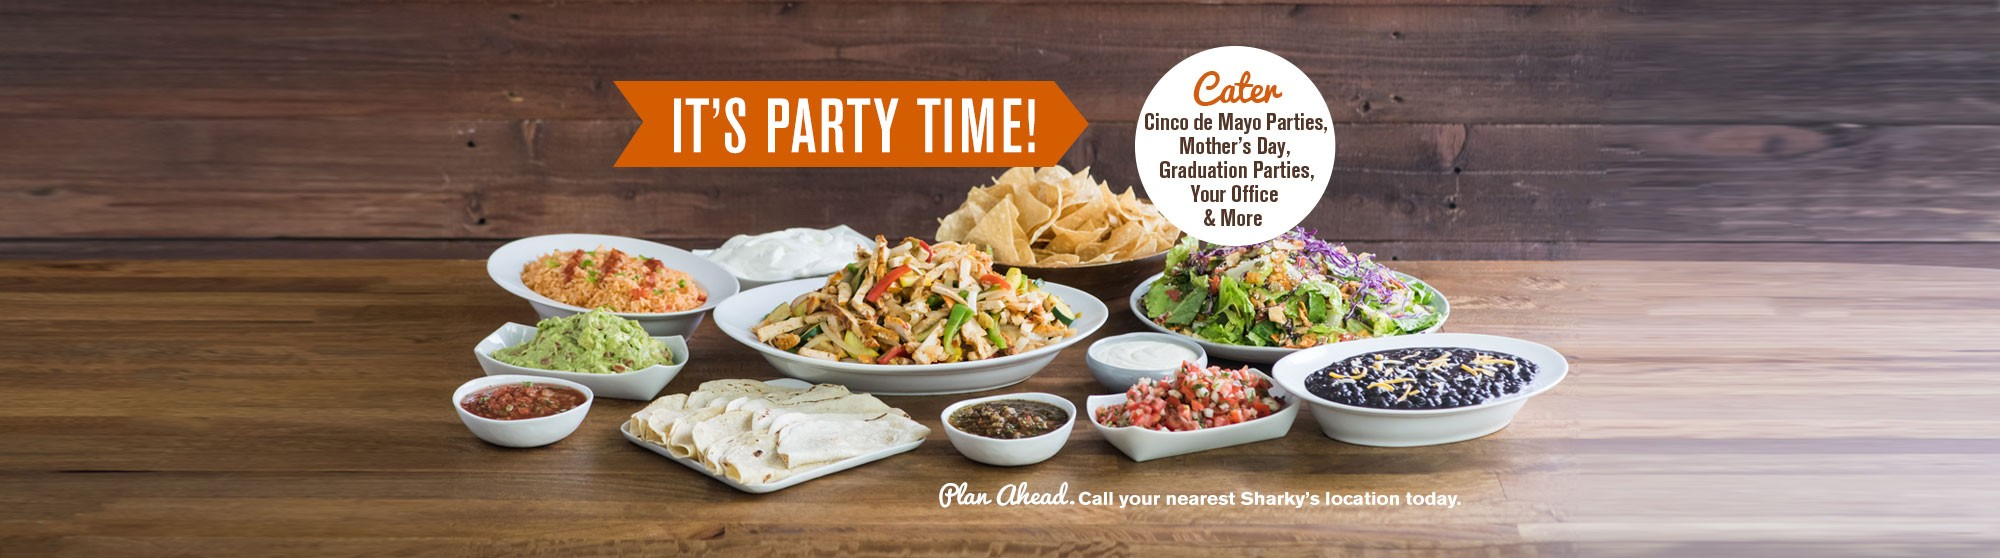 Cater your Cinco de Mayo Party, Mother's Day, Grad Party, Your Office & More!